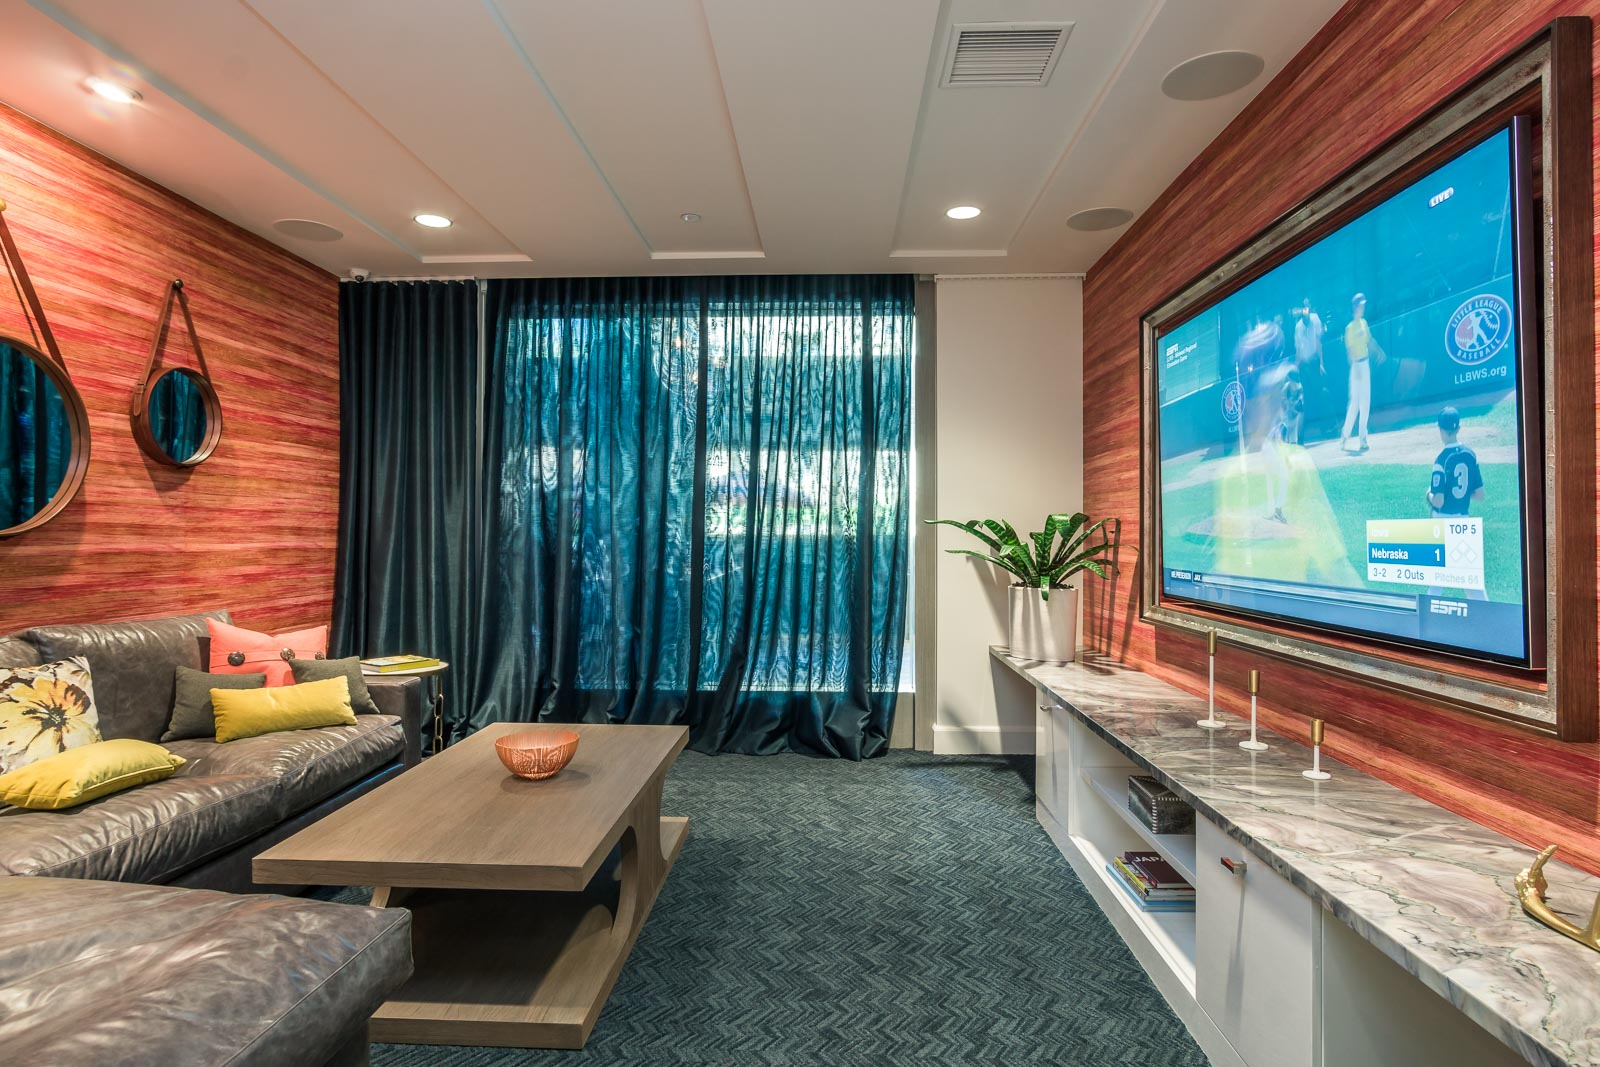 modern luxury condos in laguna nigel at Broadstone cavora with Private lounge with All audio video Installed by silver Starsound and electric